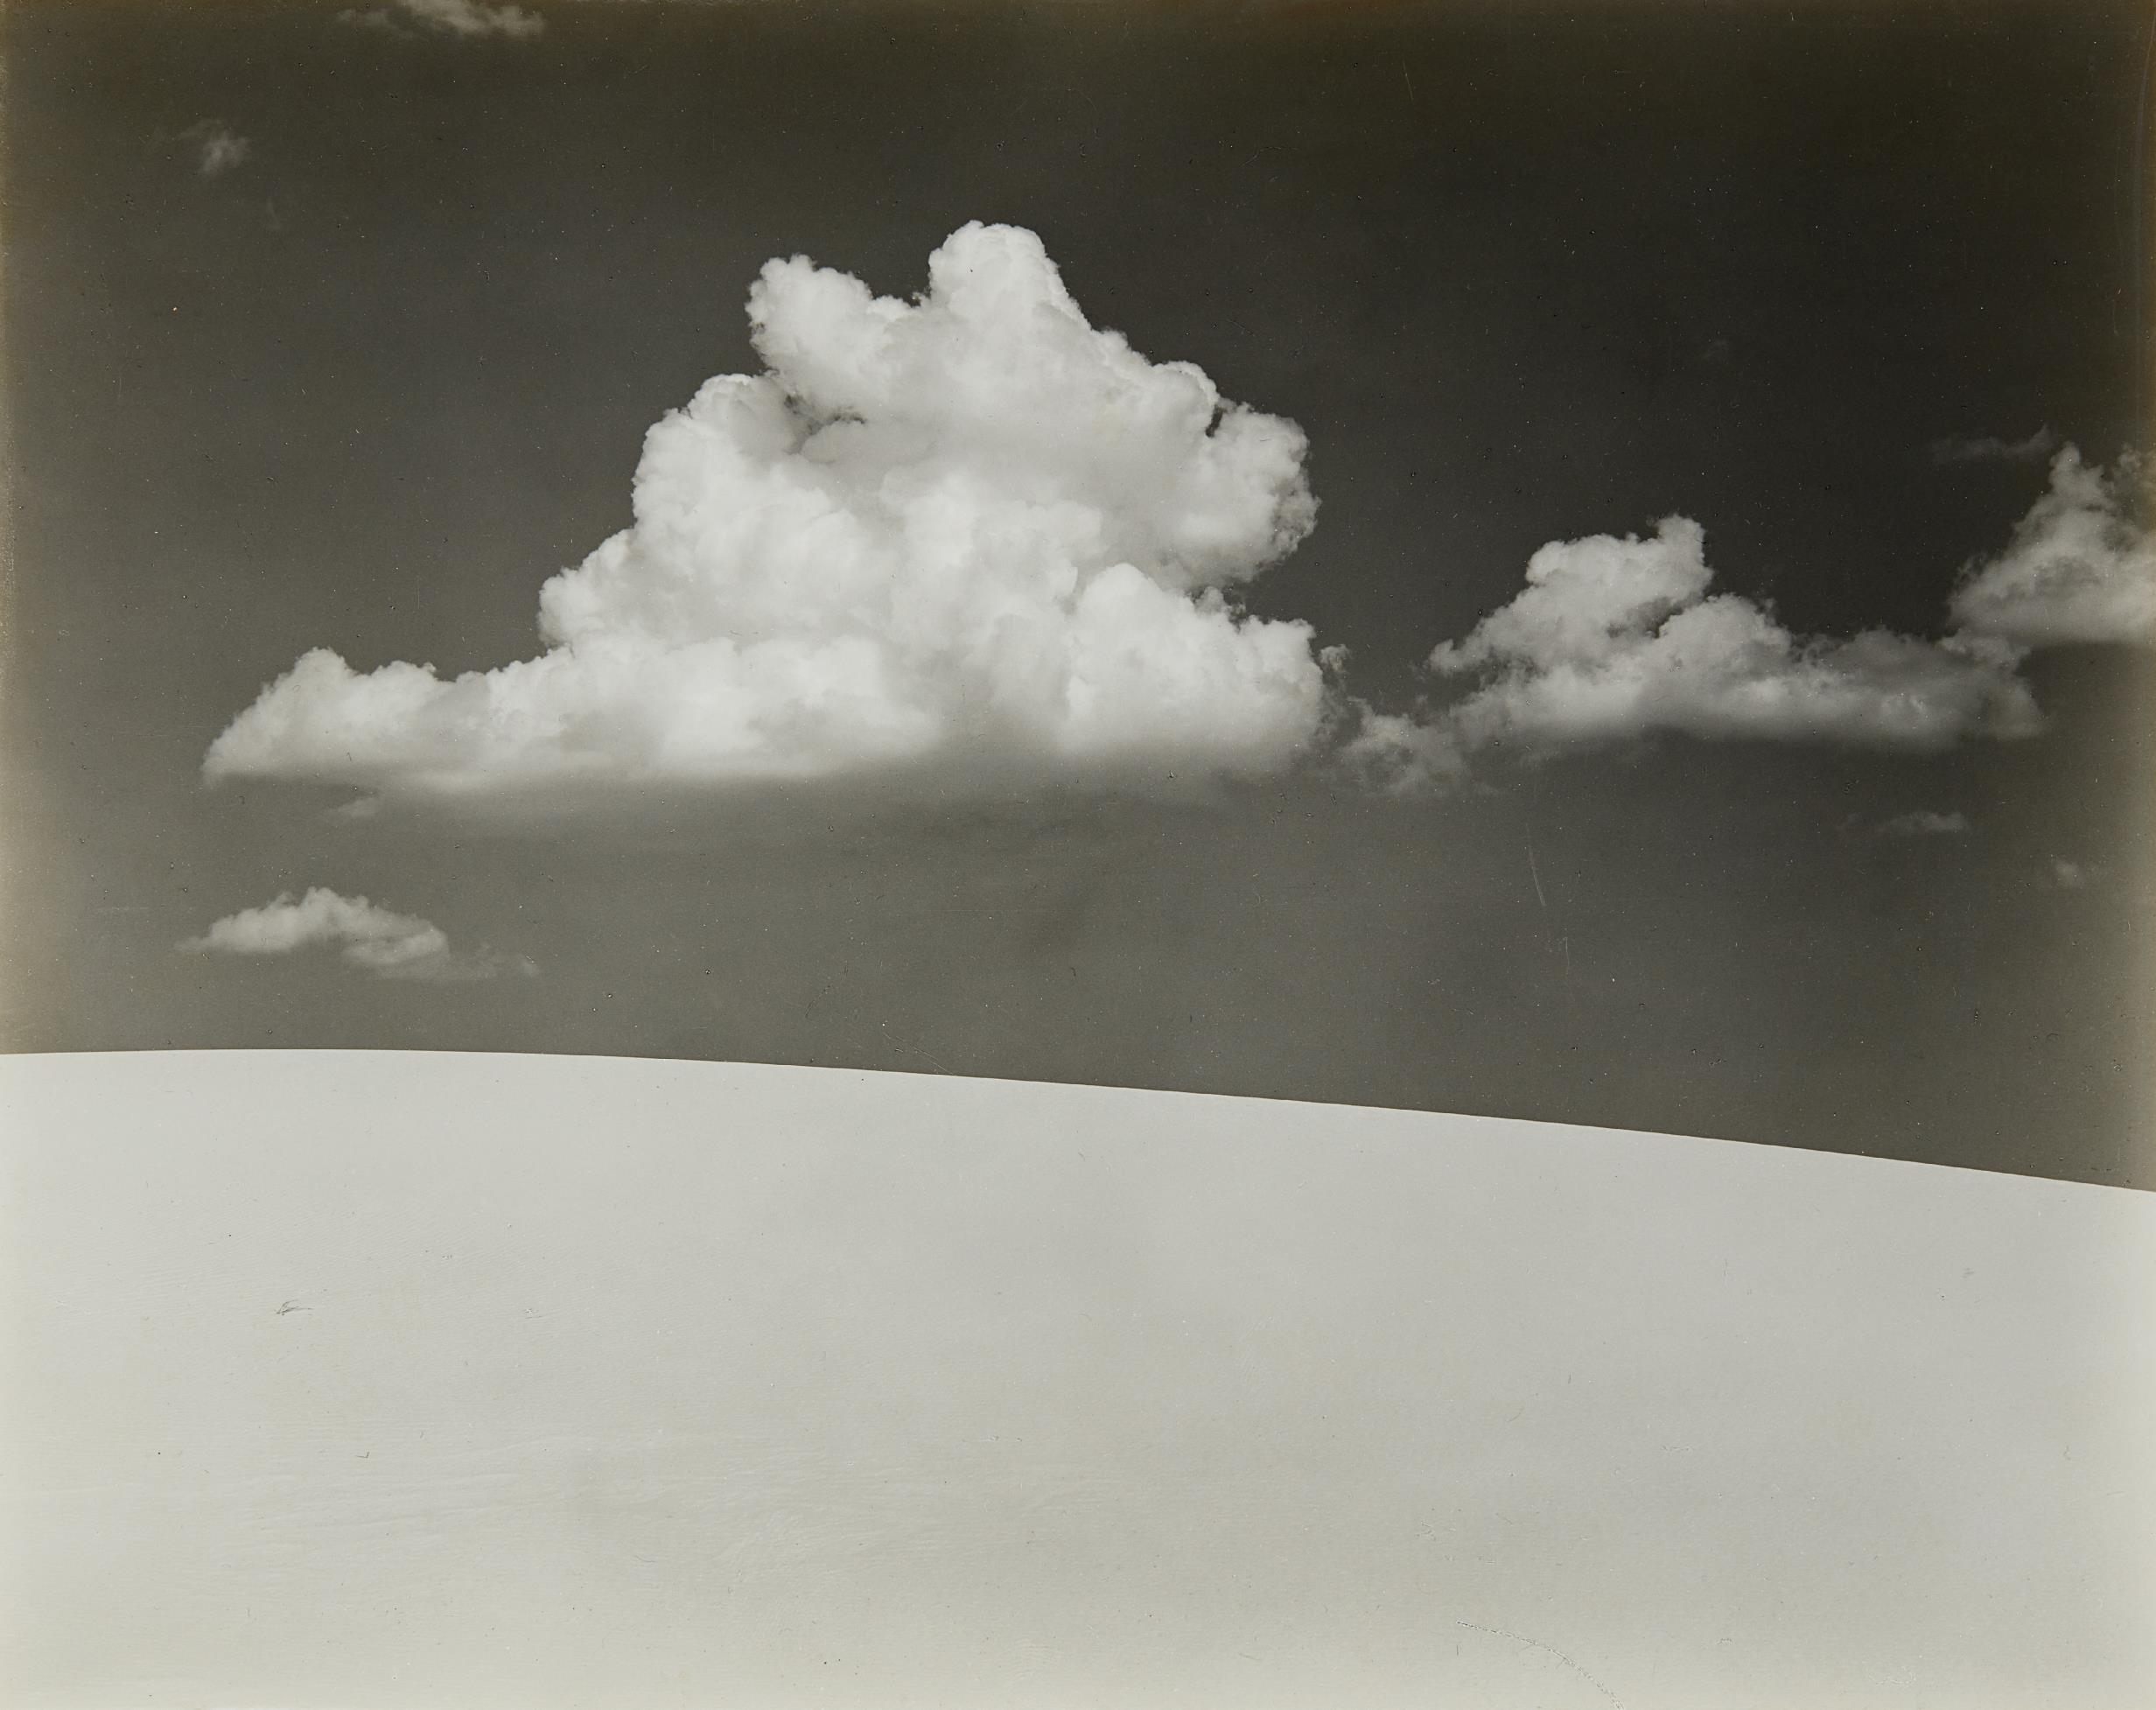 Edward Weston-White Sands, New Mexico-1941